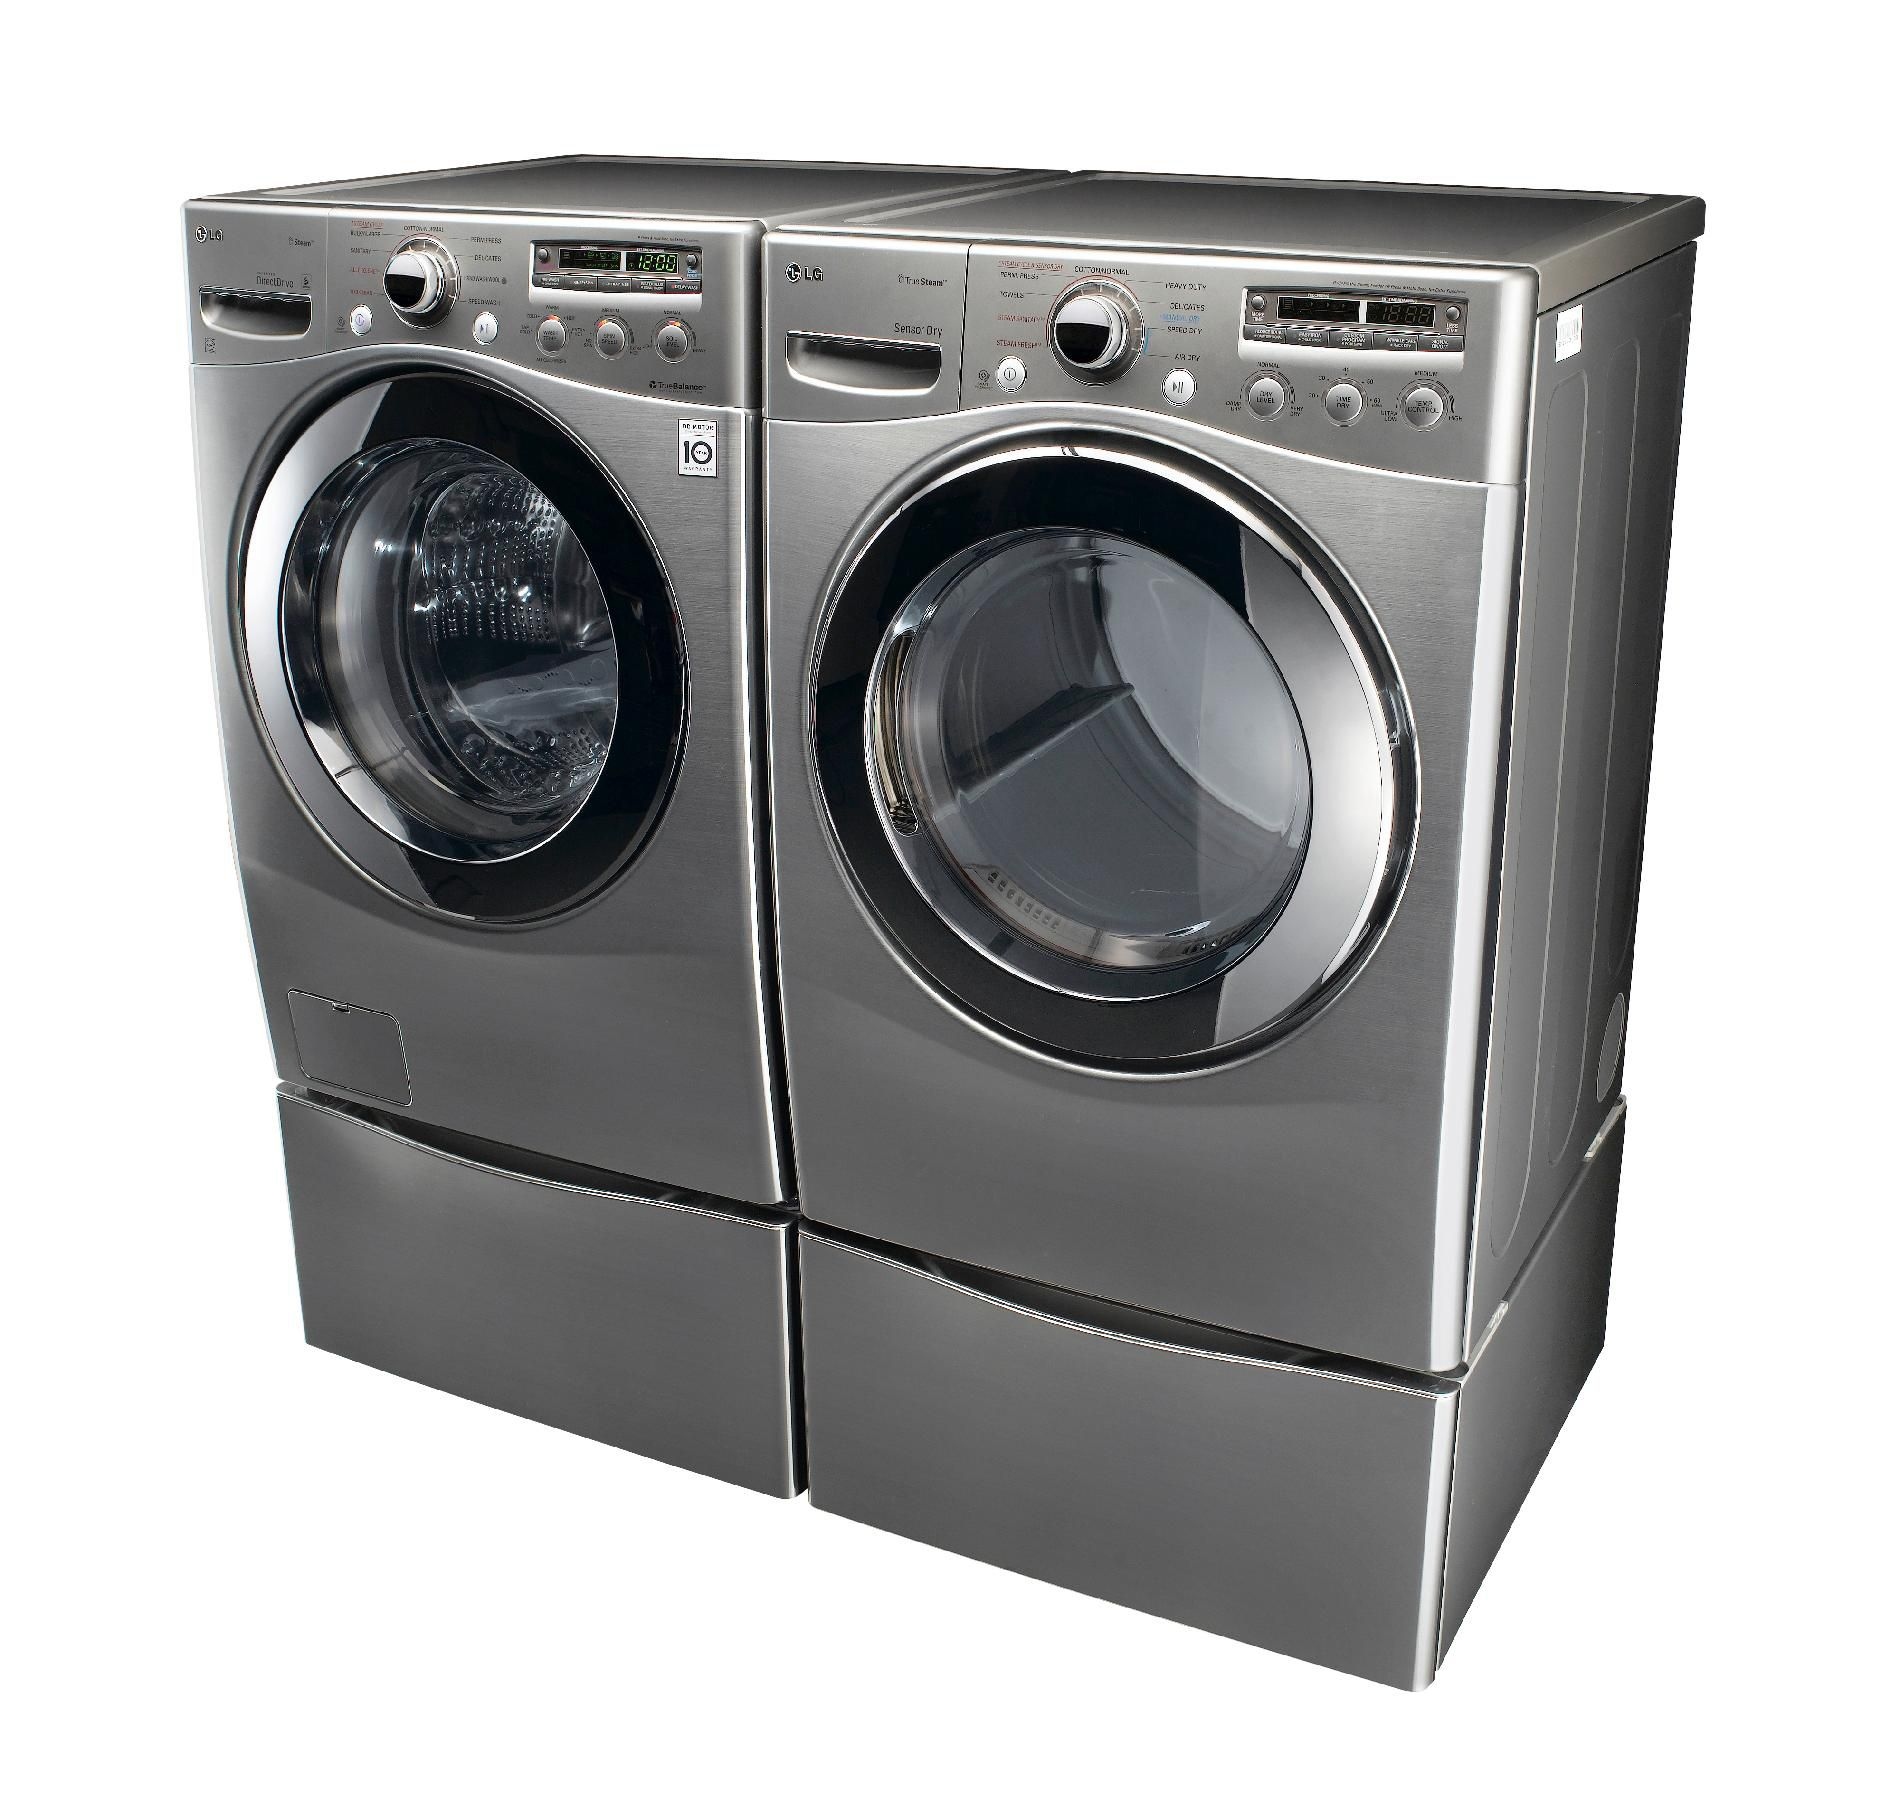 LG 3.6 Cu. Ft. Steam Front Load Washer with w/Cold Wash™ - Graphite Steel